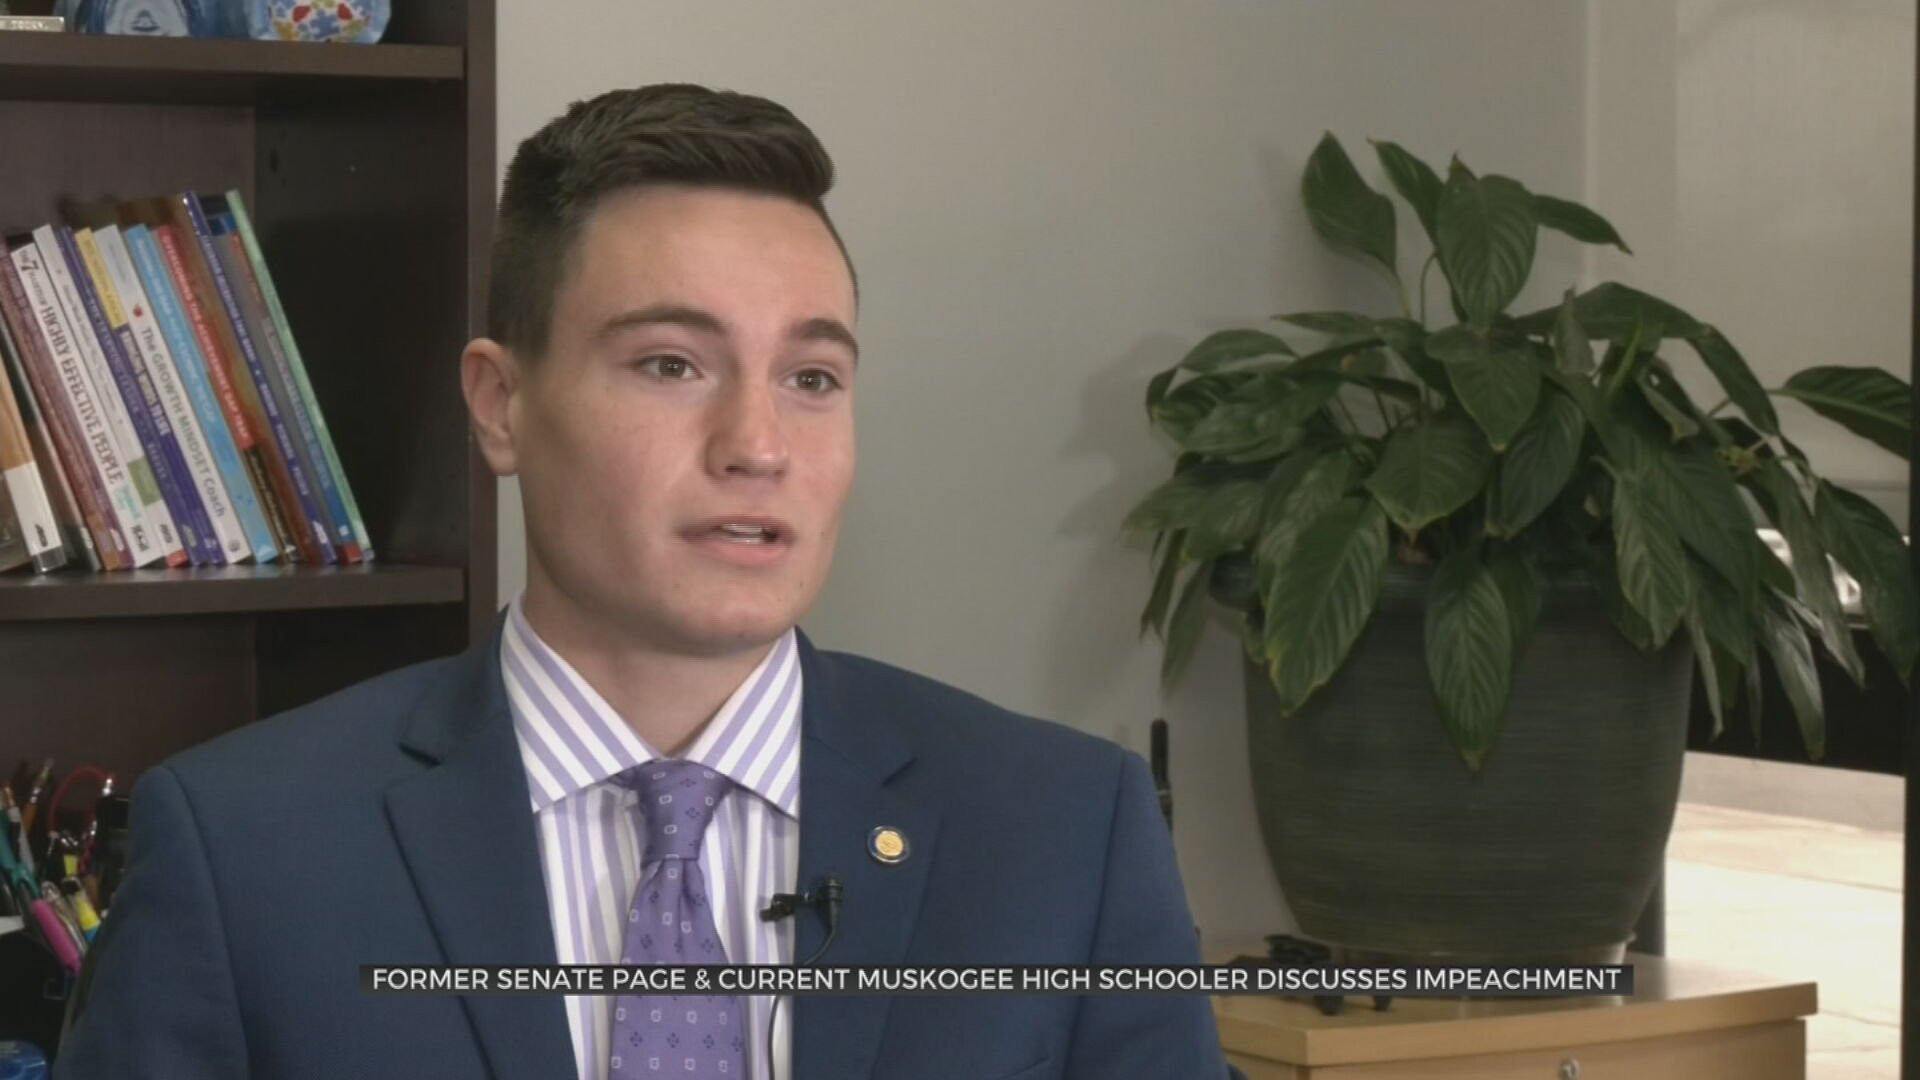 Muskogee High School Student, Former Senate Page Discusses Impeachment Experience